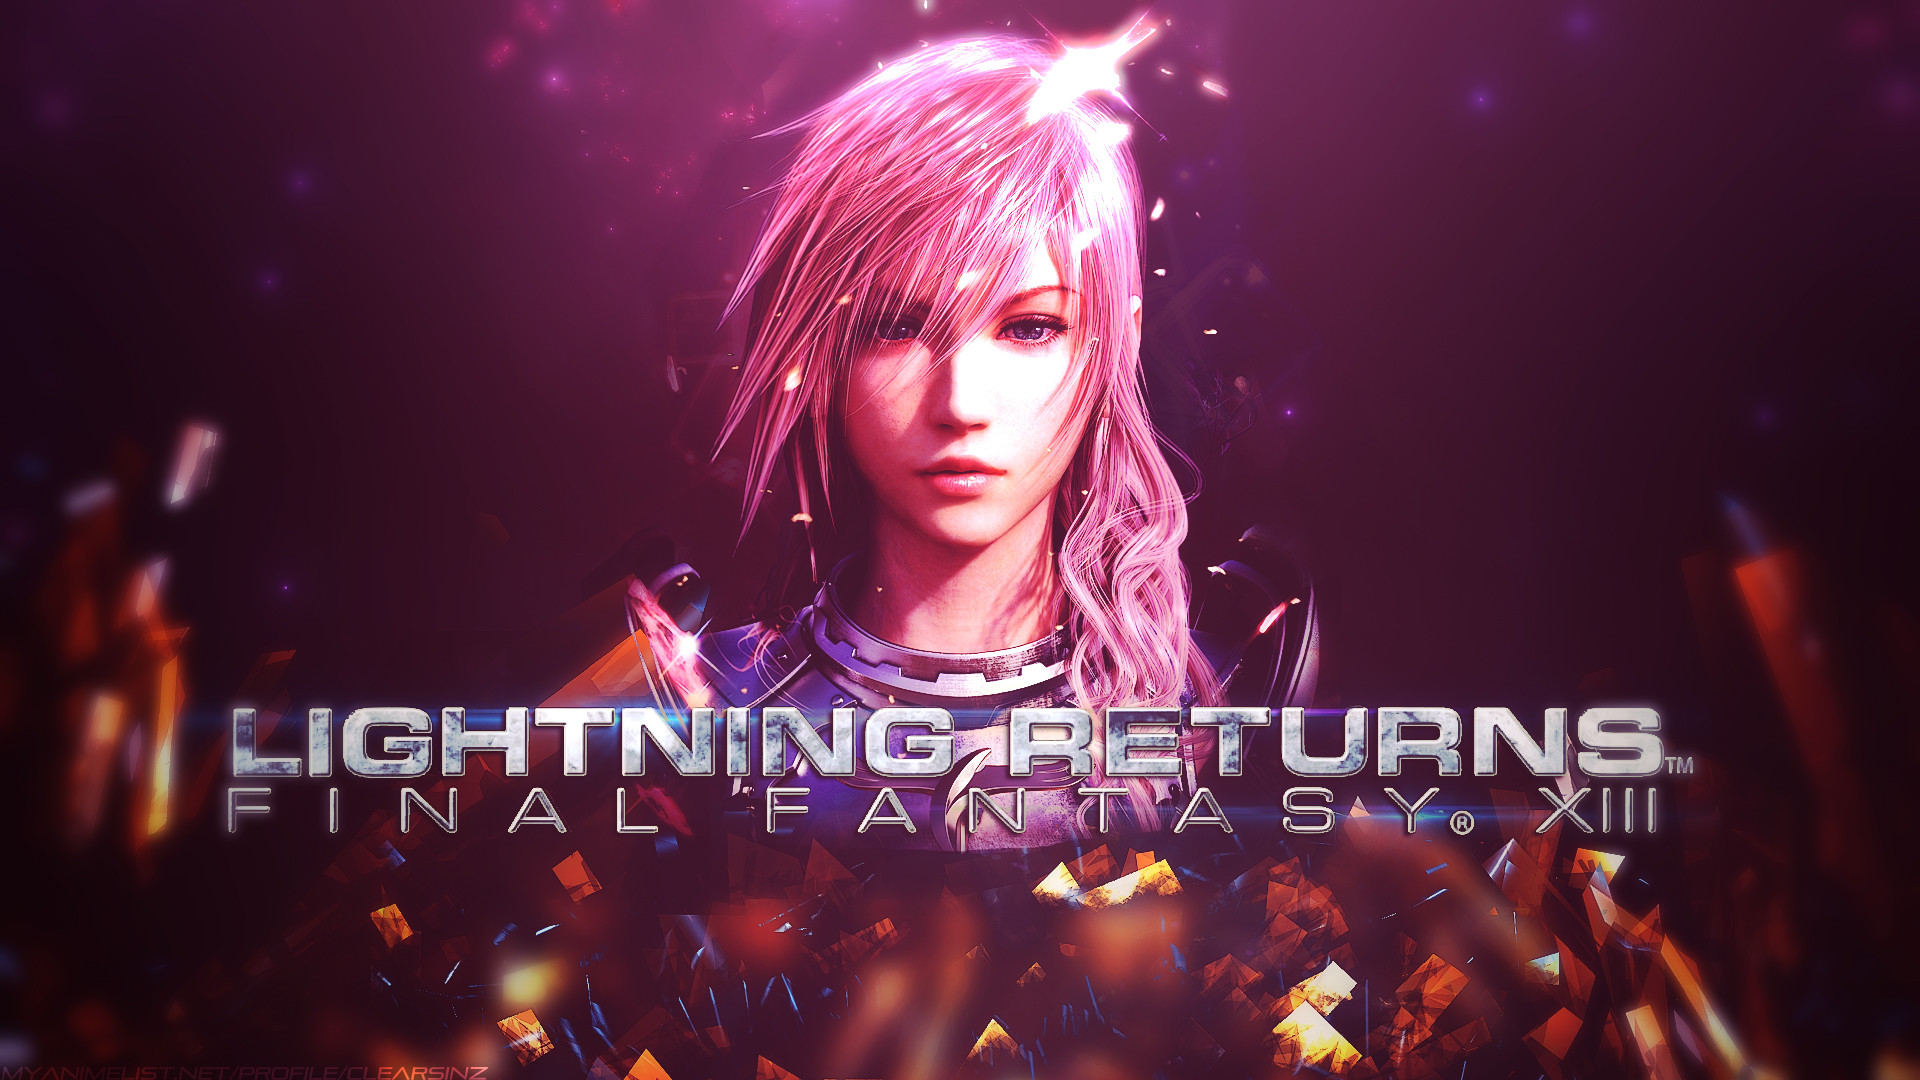 Lightning returns wallpaper 1440x900 2018 images pictures lightning returns wallpaper hd wallpapersafari lightning returns wallpaper 1440x900 voltagebd Images